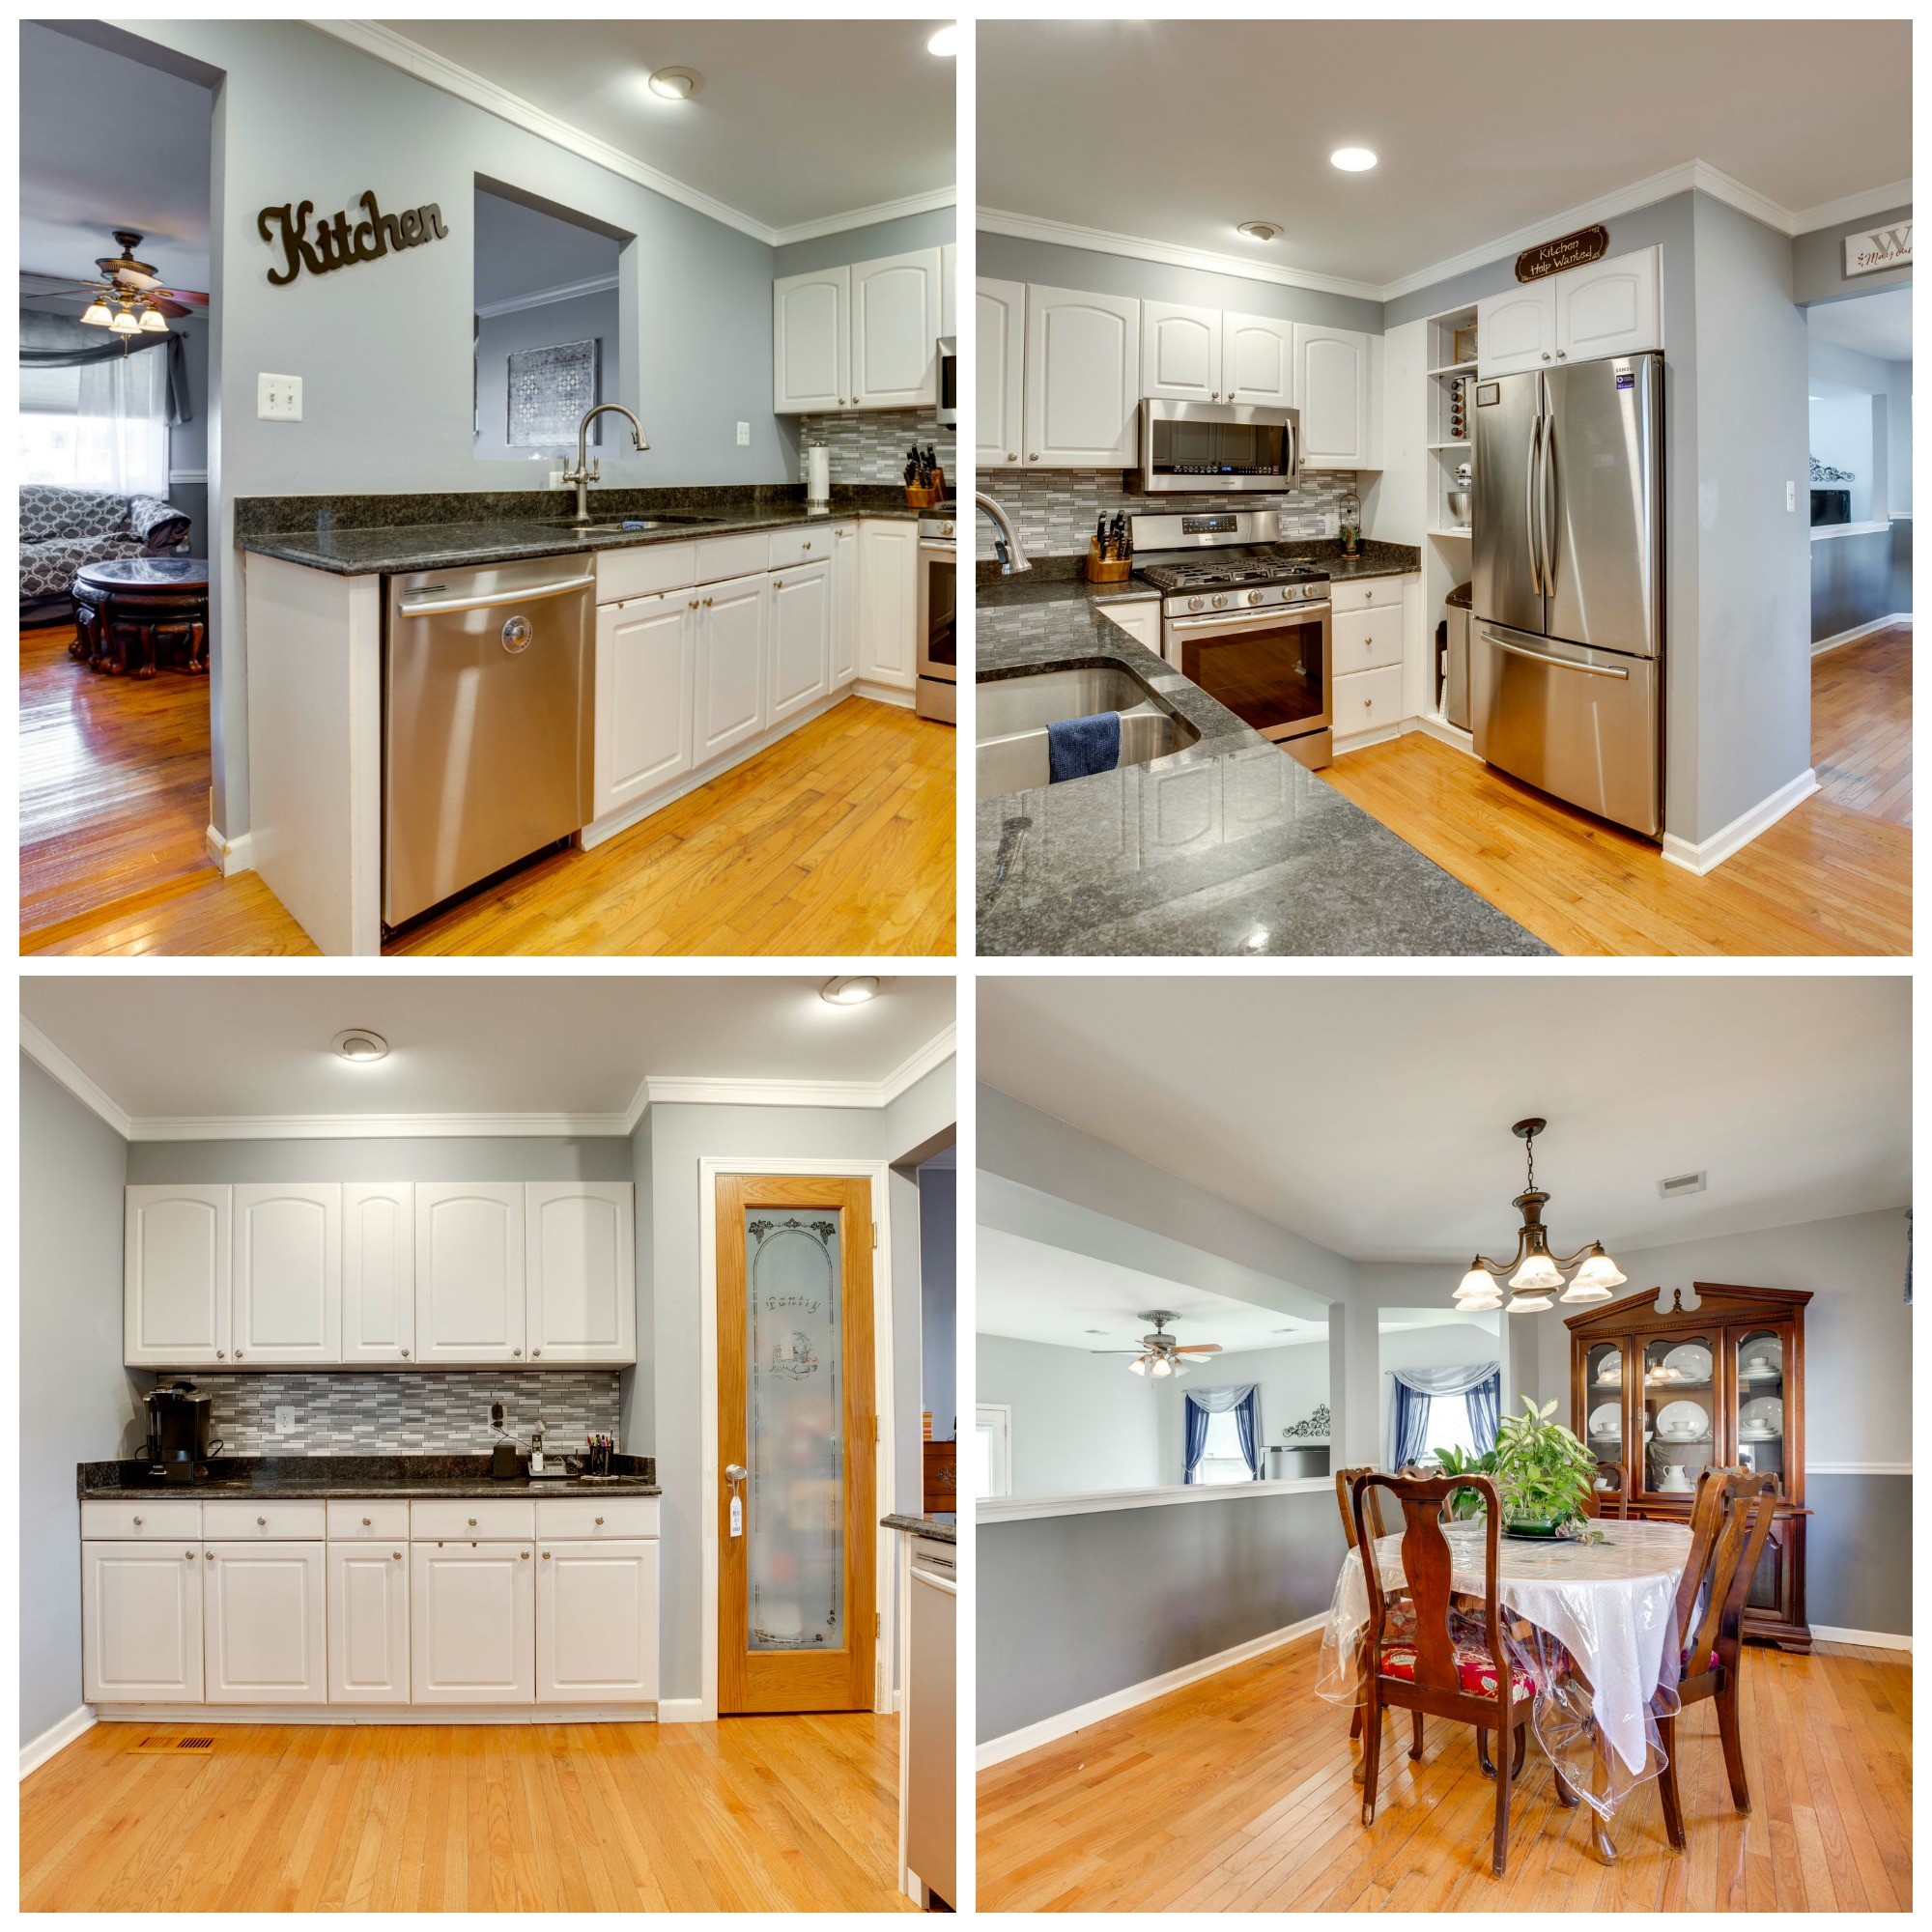 9331 King George Dr, Manassas- Kitchen